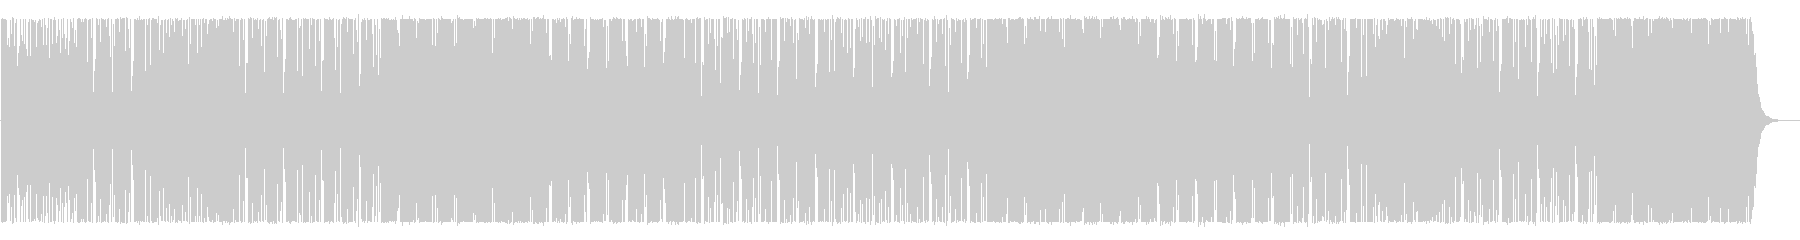 Inorganic and underground atmosphere BGM's unreproduced waveform